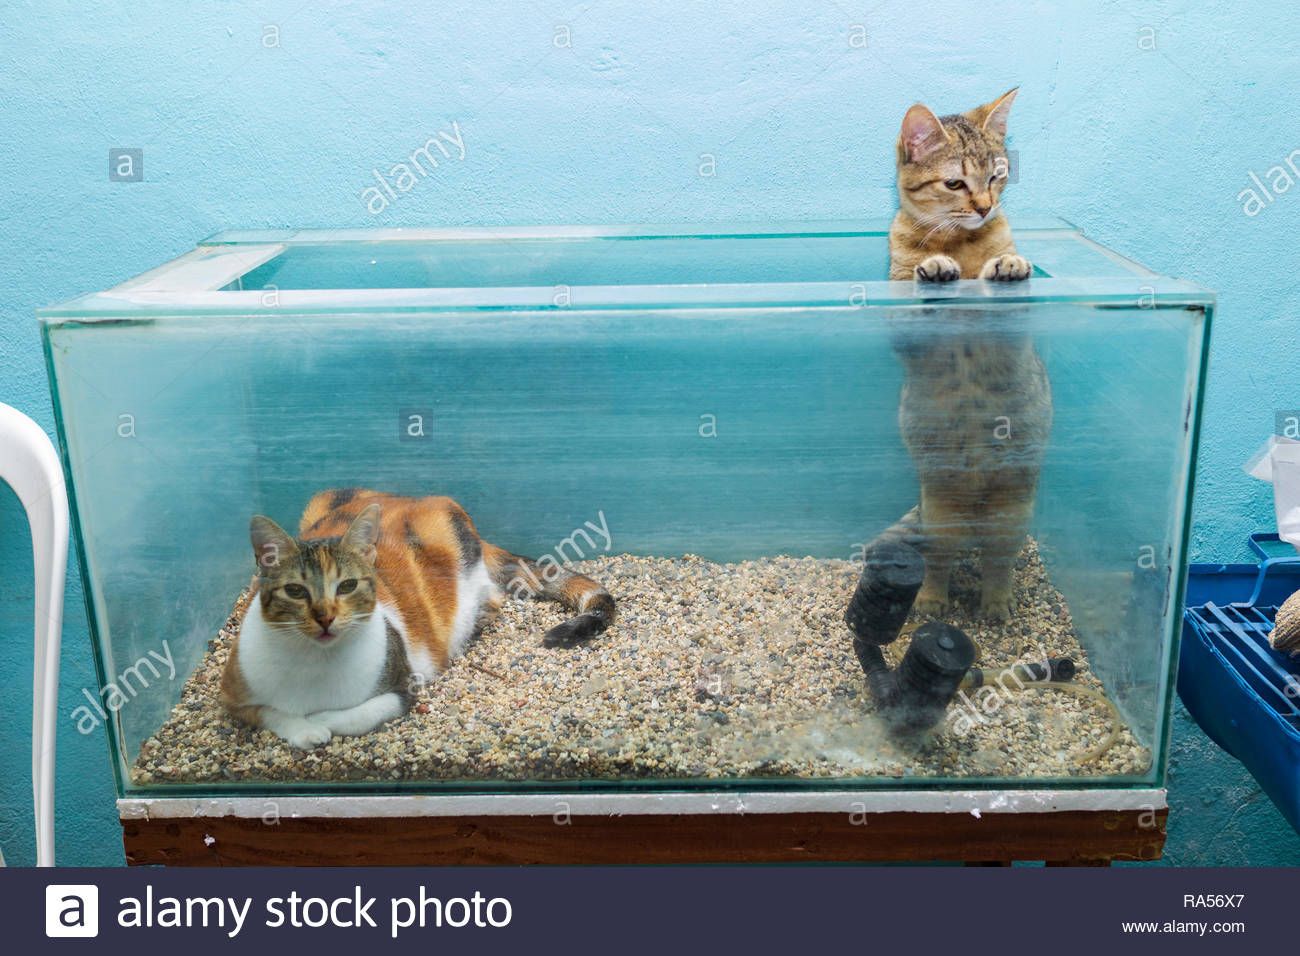 cats-in-an-empty-aquarium-prove-again-that-cats-love-boxes-RA56X7.jpg